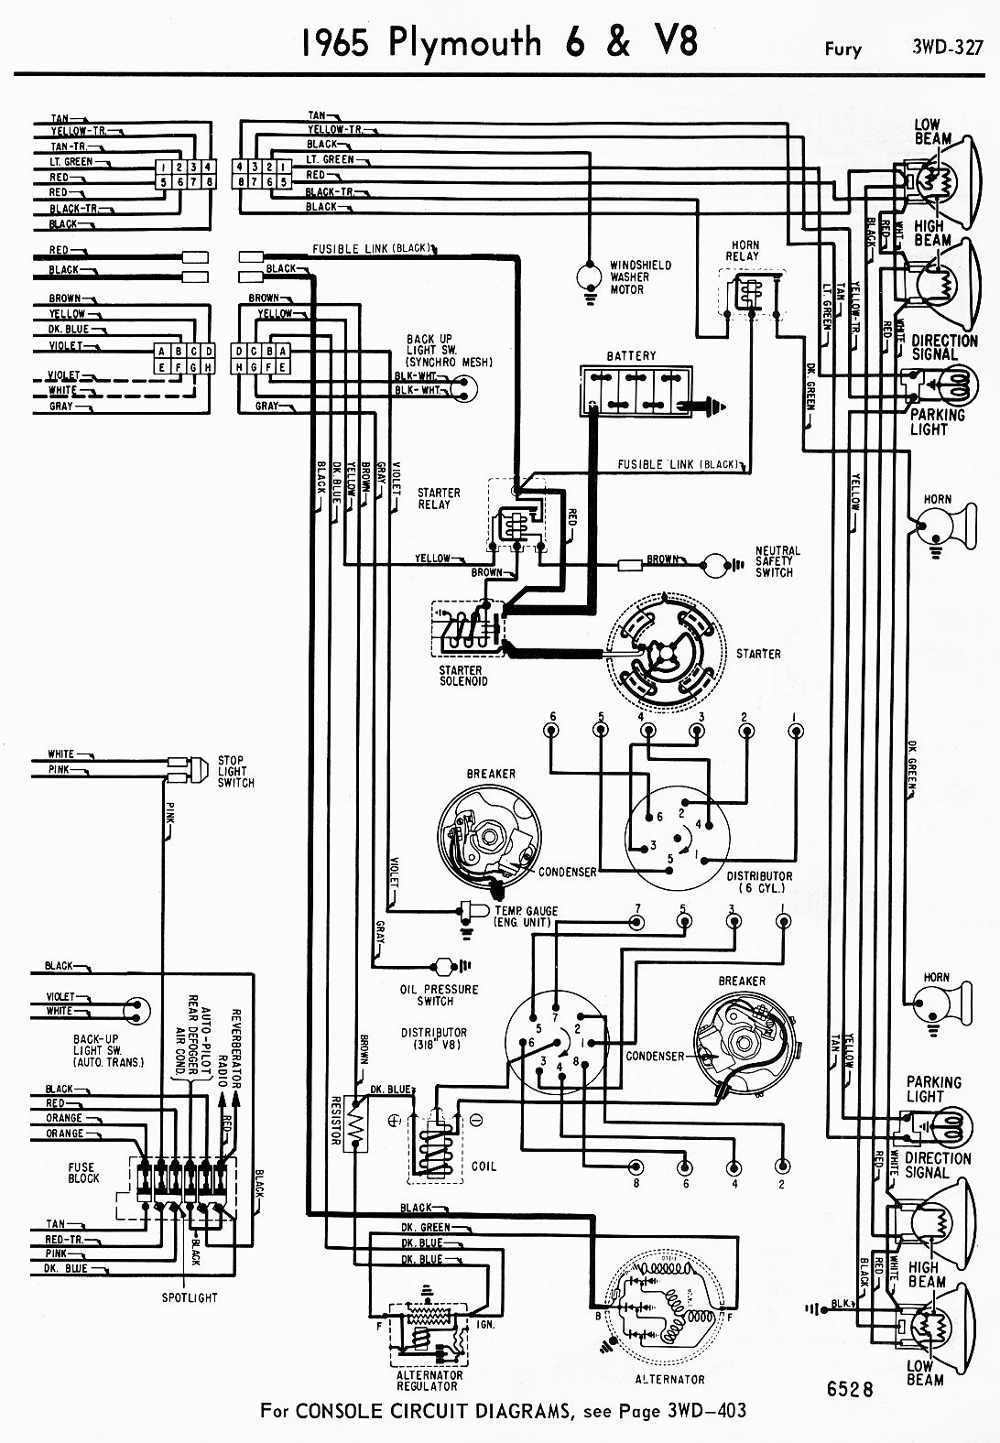 96 Ford Windstar Fuse Box Diagram furthermore B1fg03k3 besides 1996 Ford Ranger Engine Diagram additionally 8lnhs Ford 1997 Ford Ranger 2 3l Check Engine Lt Flashes likewise Airplane Wing Parts Diagram. on ranger engine diagram